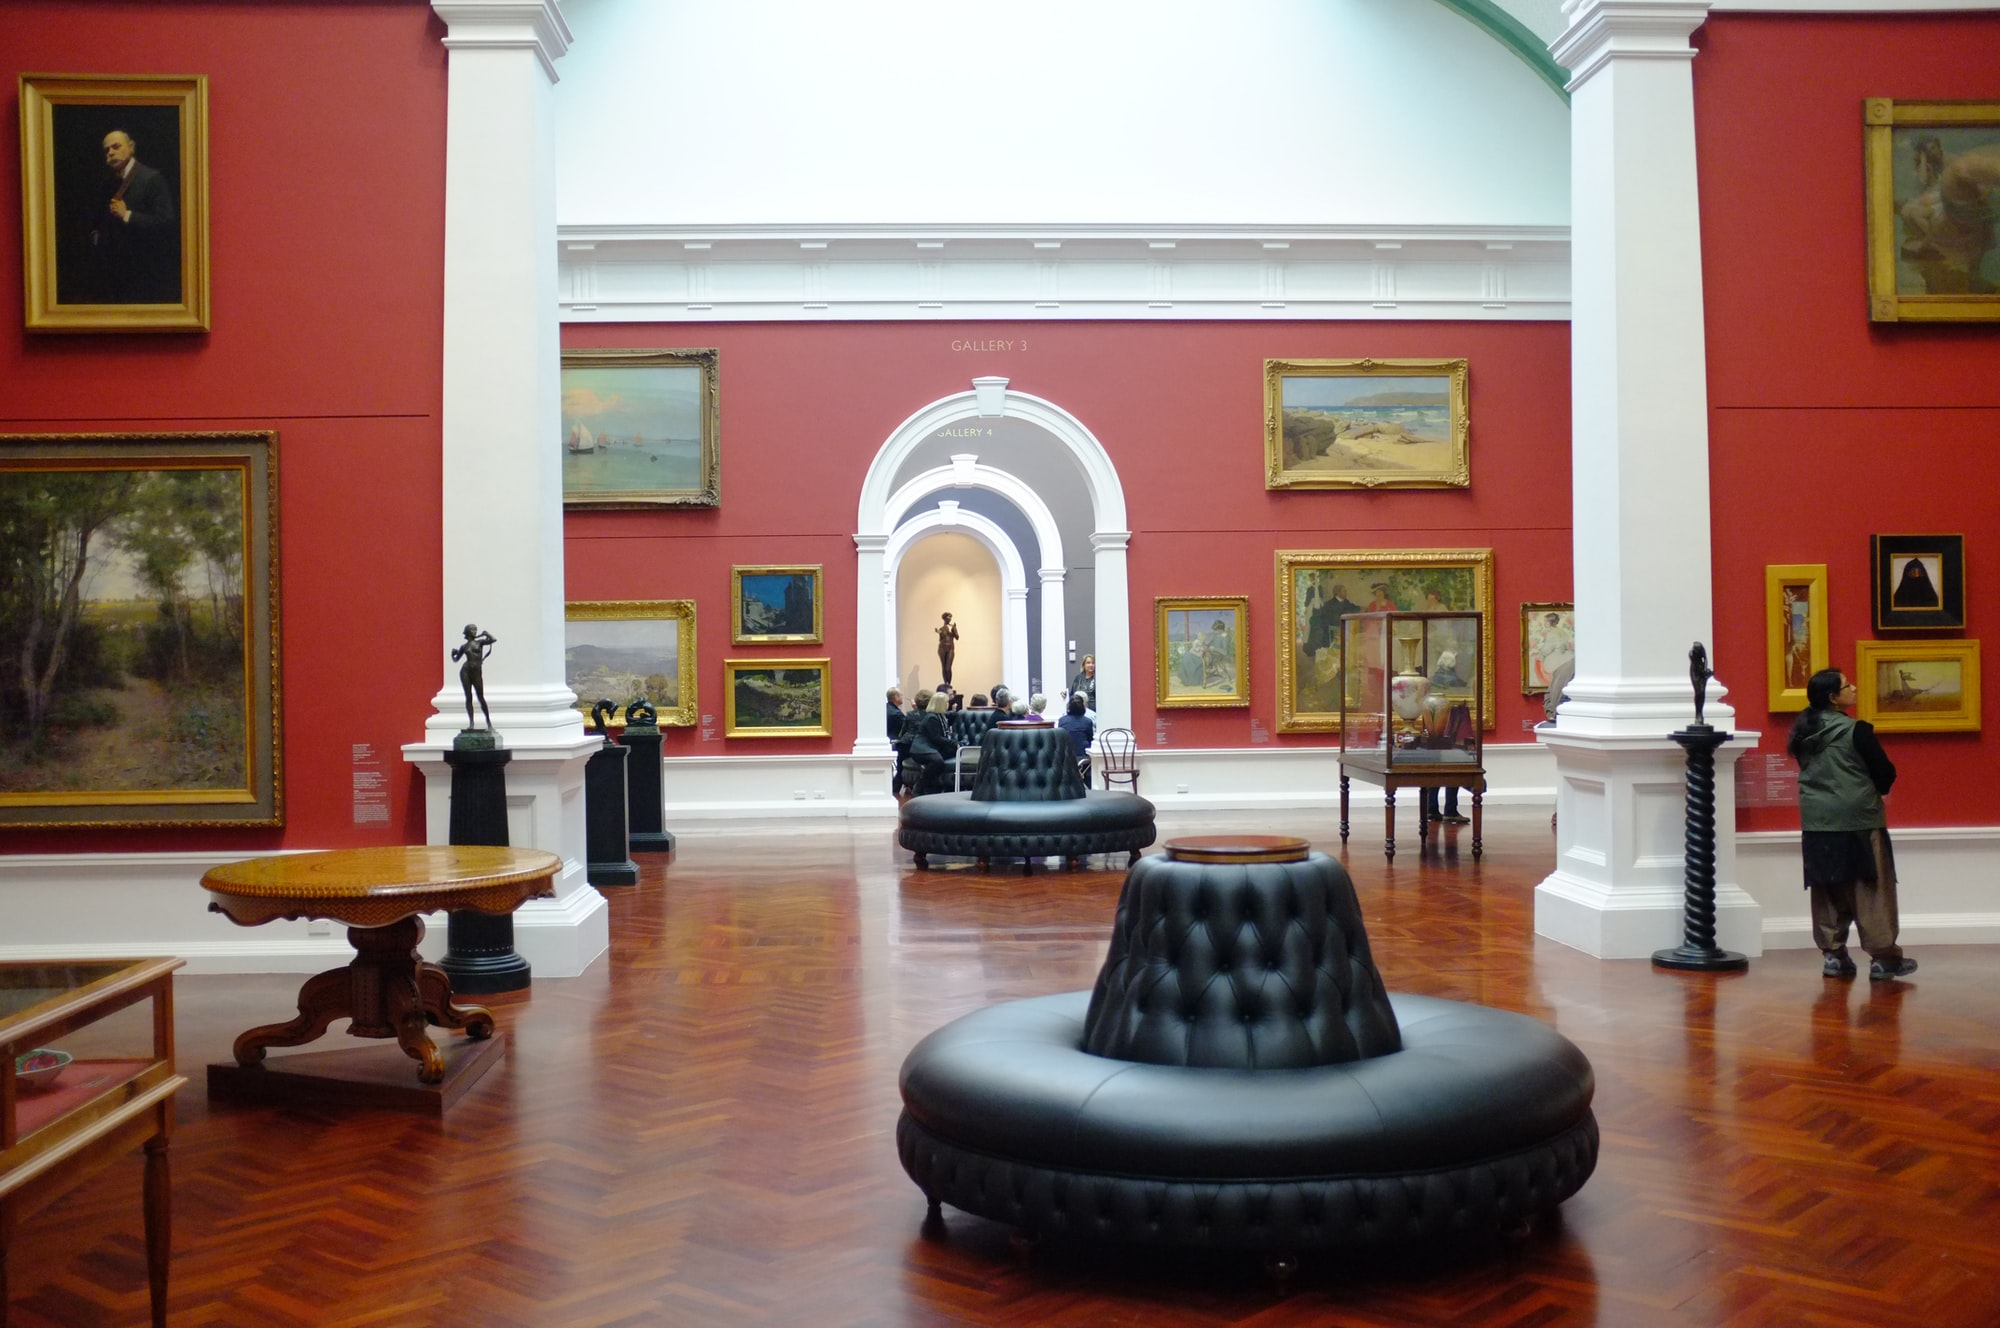 The Ashmolean Museum, founded in 1677